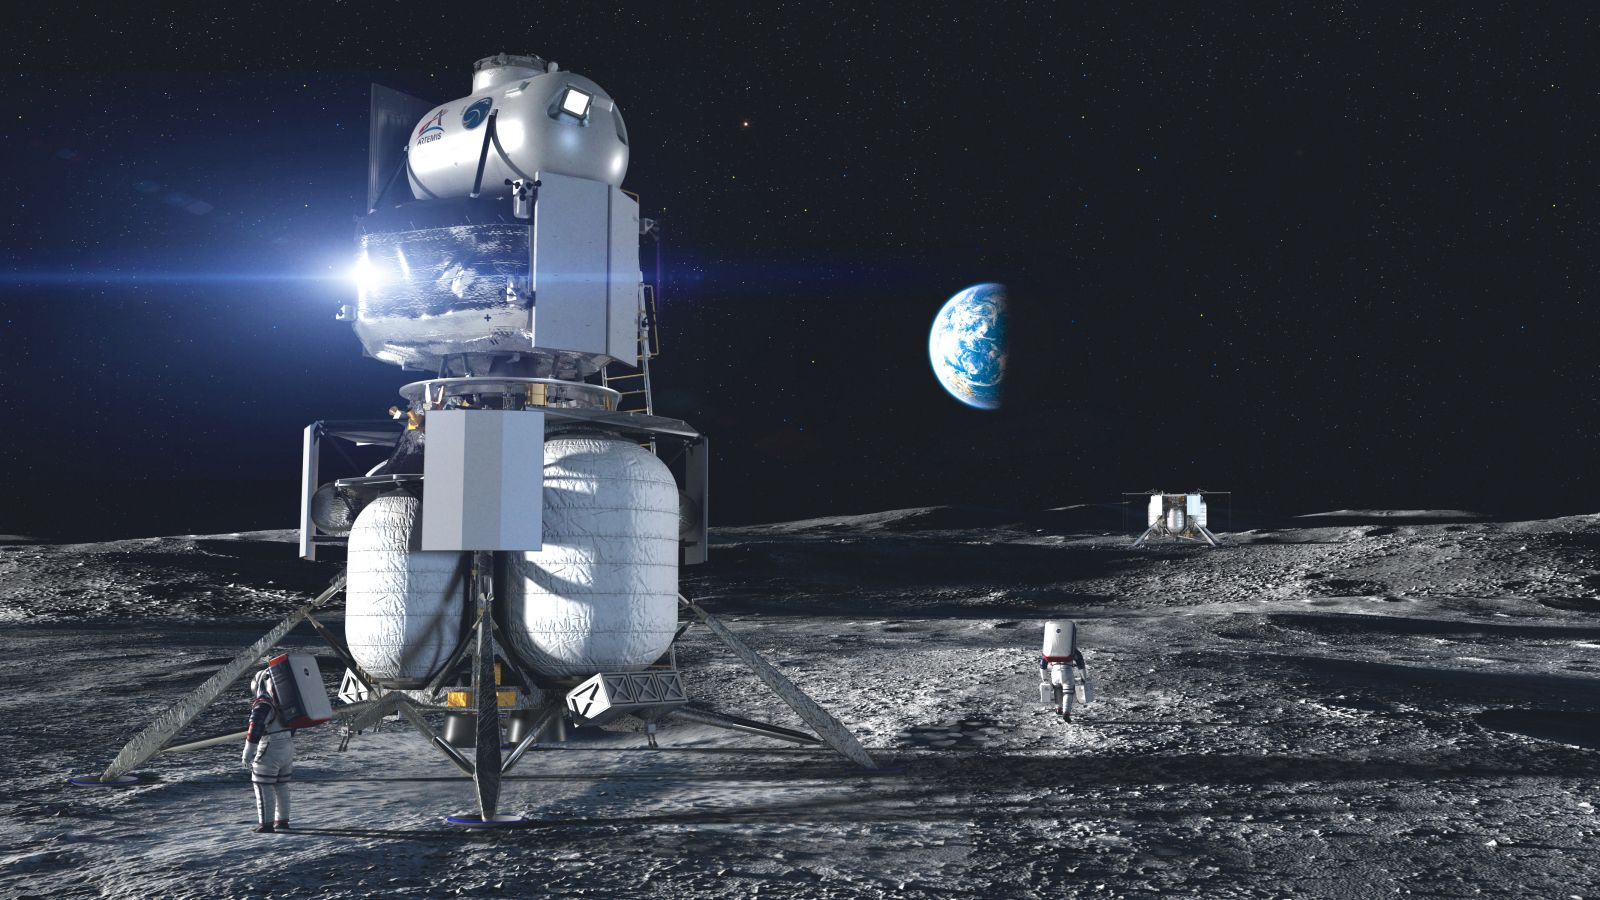 An artist's rendering of a lunar lander on the south pole of the Moon. NASA is currently exploring a number of solutions for navigating on the Moon's surface. Credit: NASA/Blue Origin